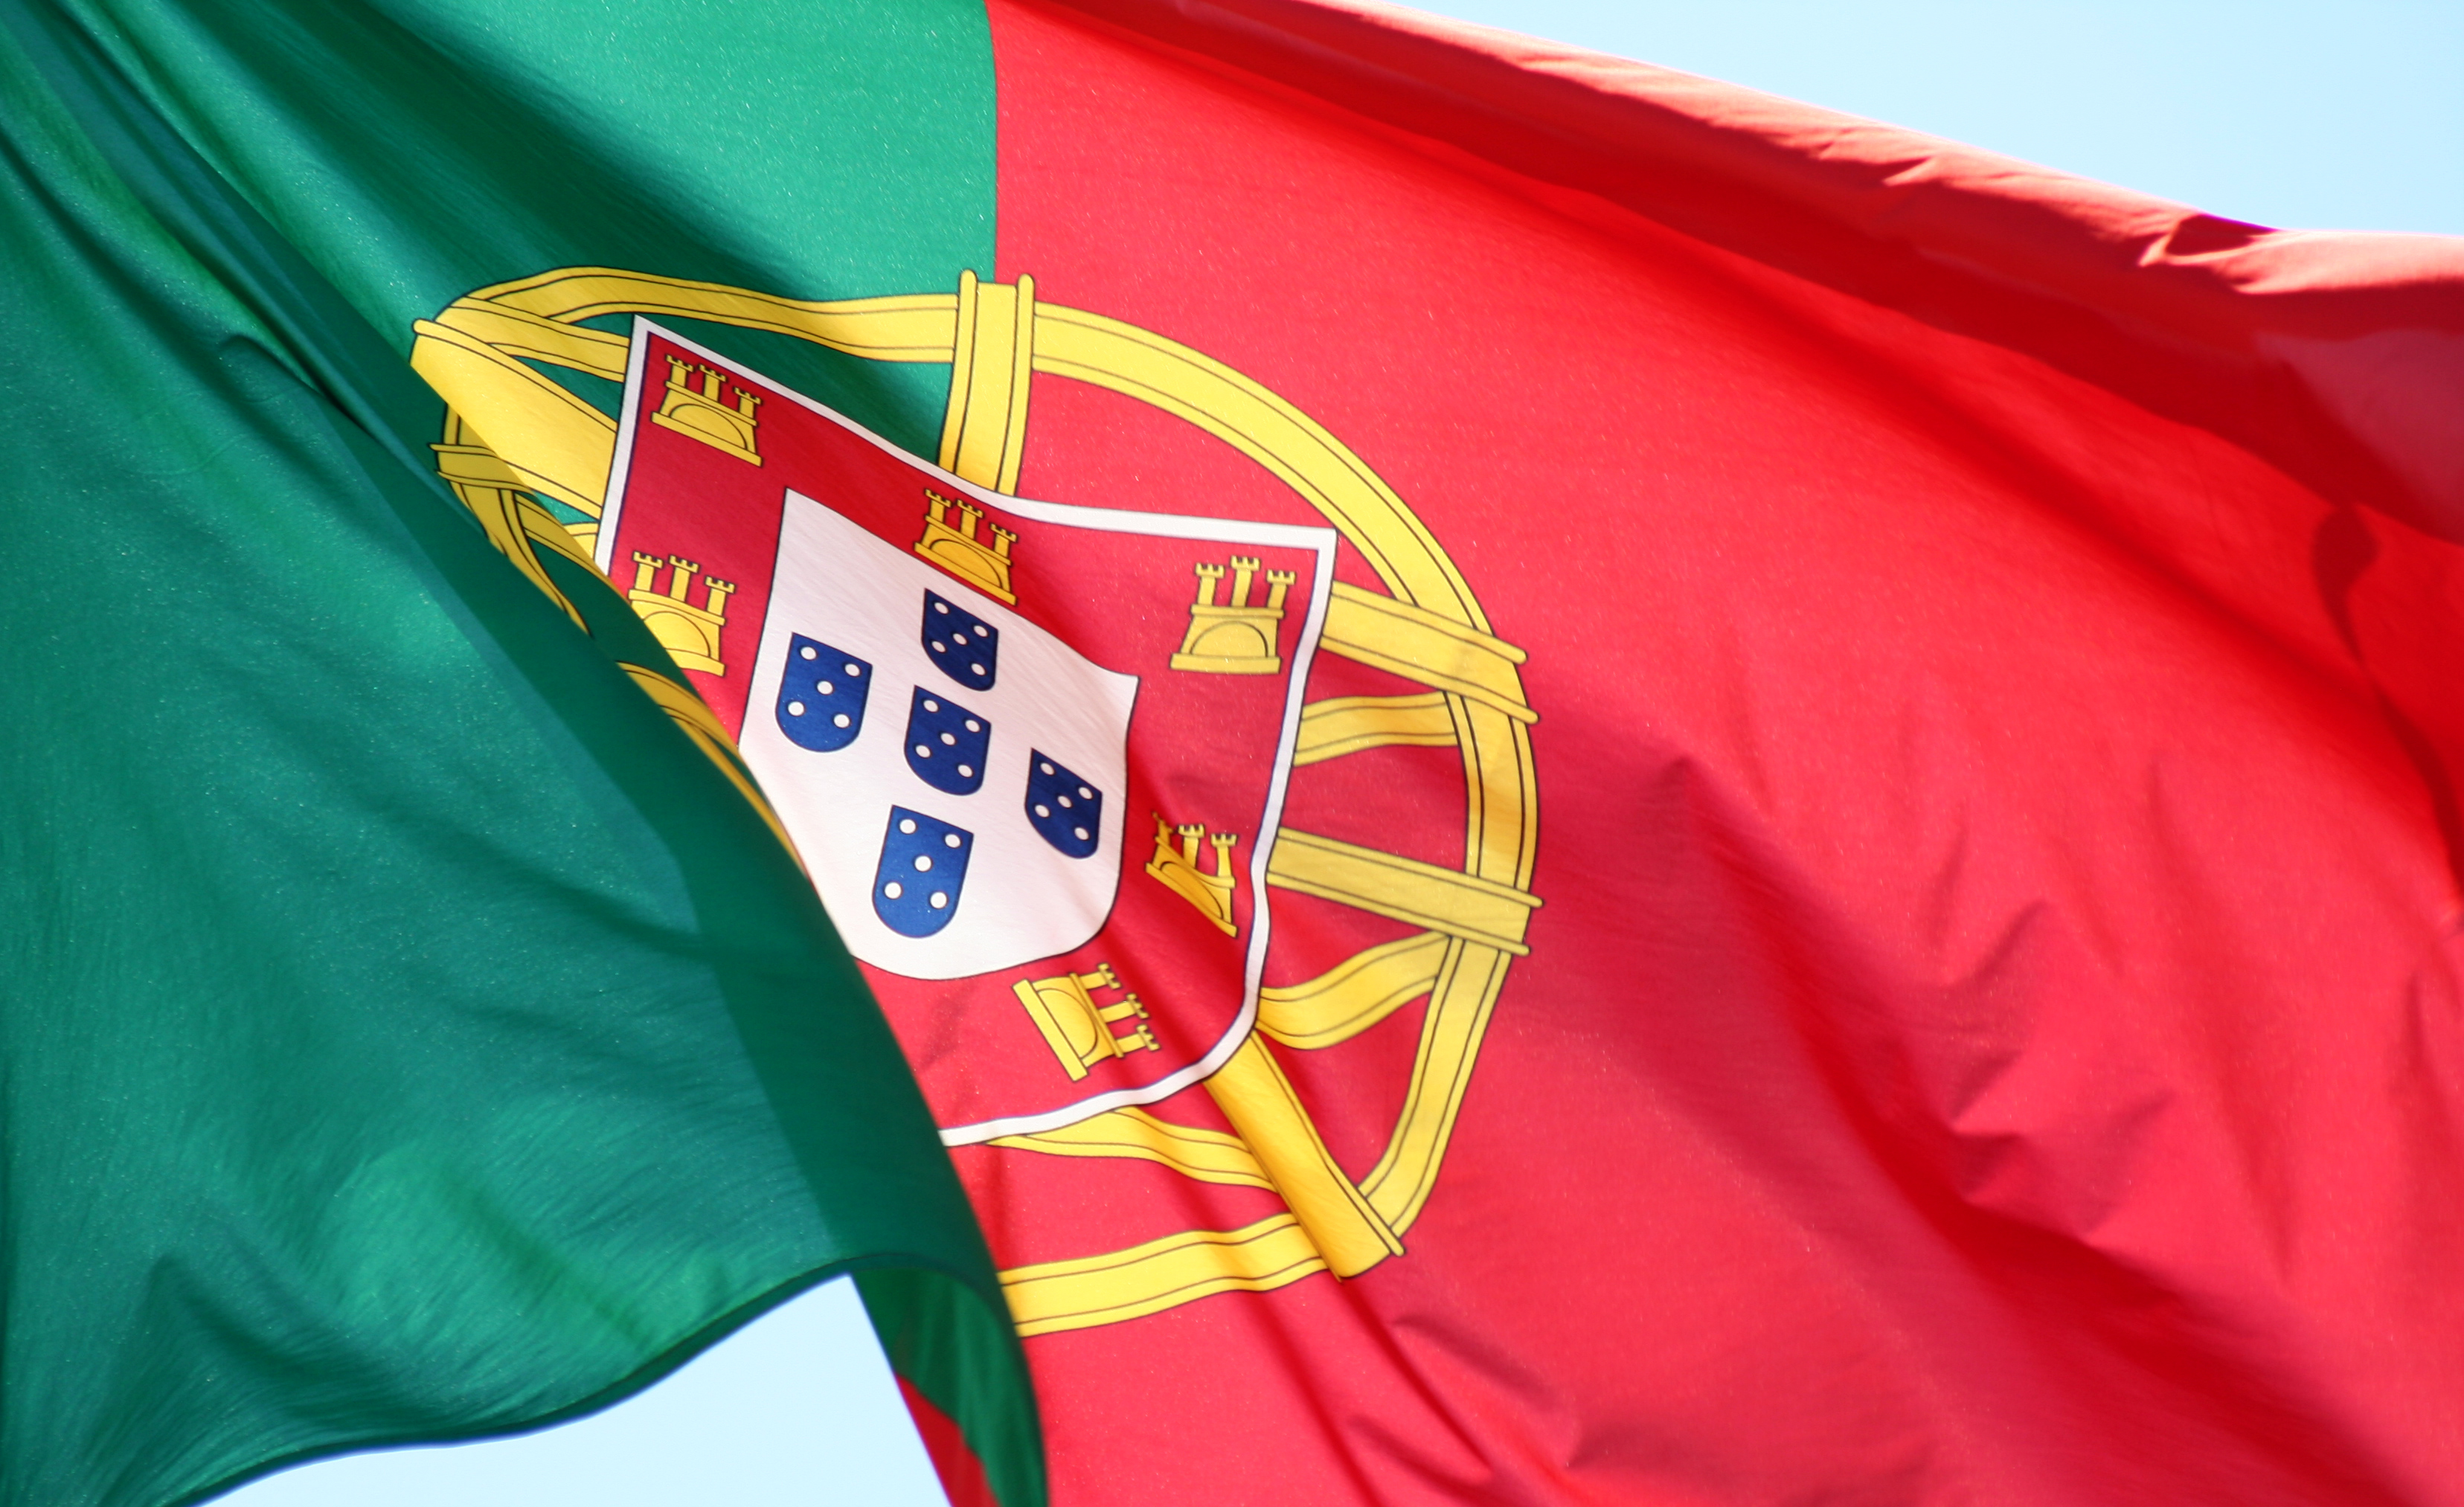 National Symbols Of Portugal Wikipedia